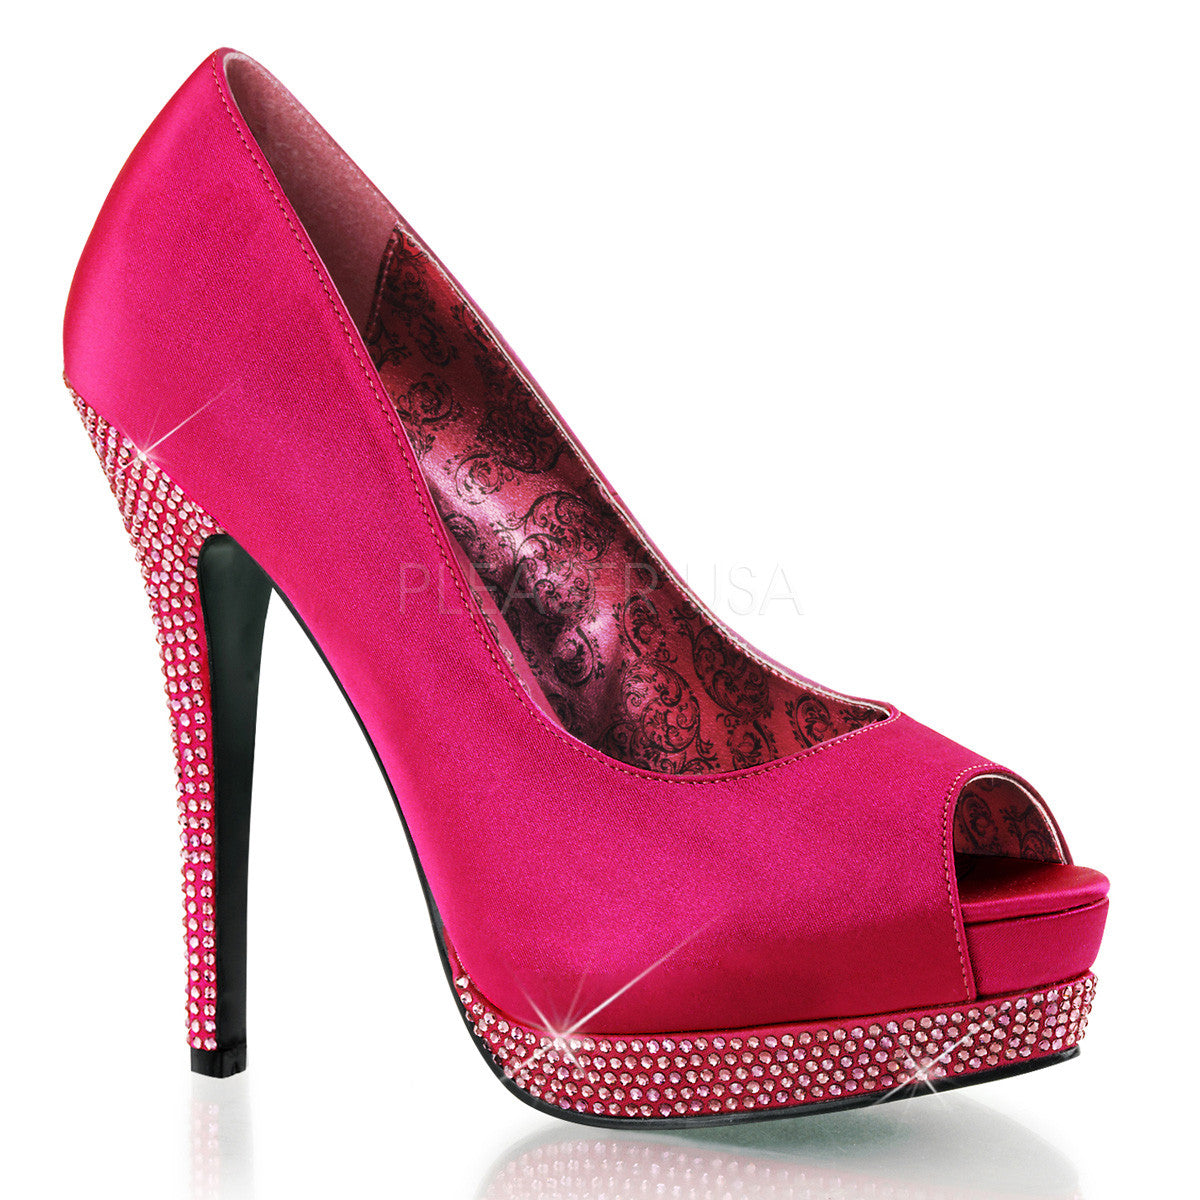 Bordello,BELLA-12R Hot Pink Satin Pumps - Shoecup.com